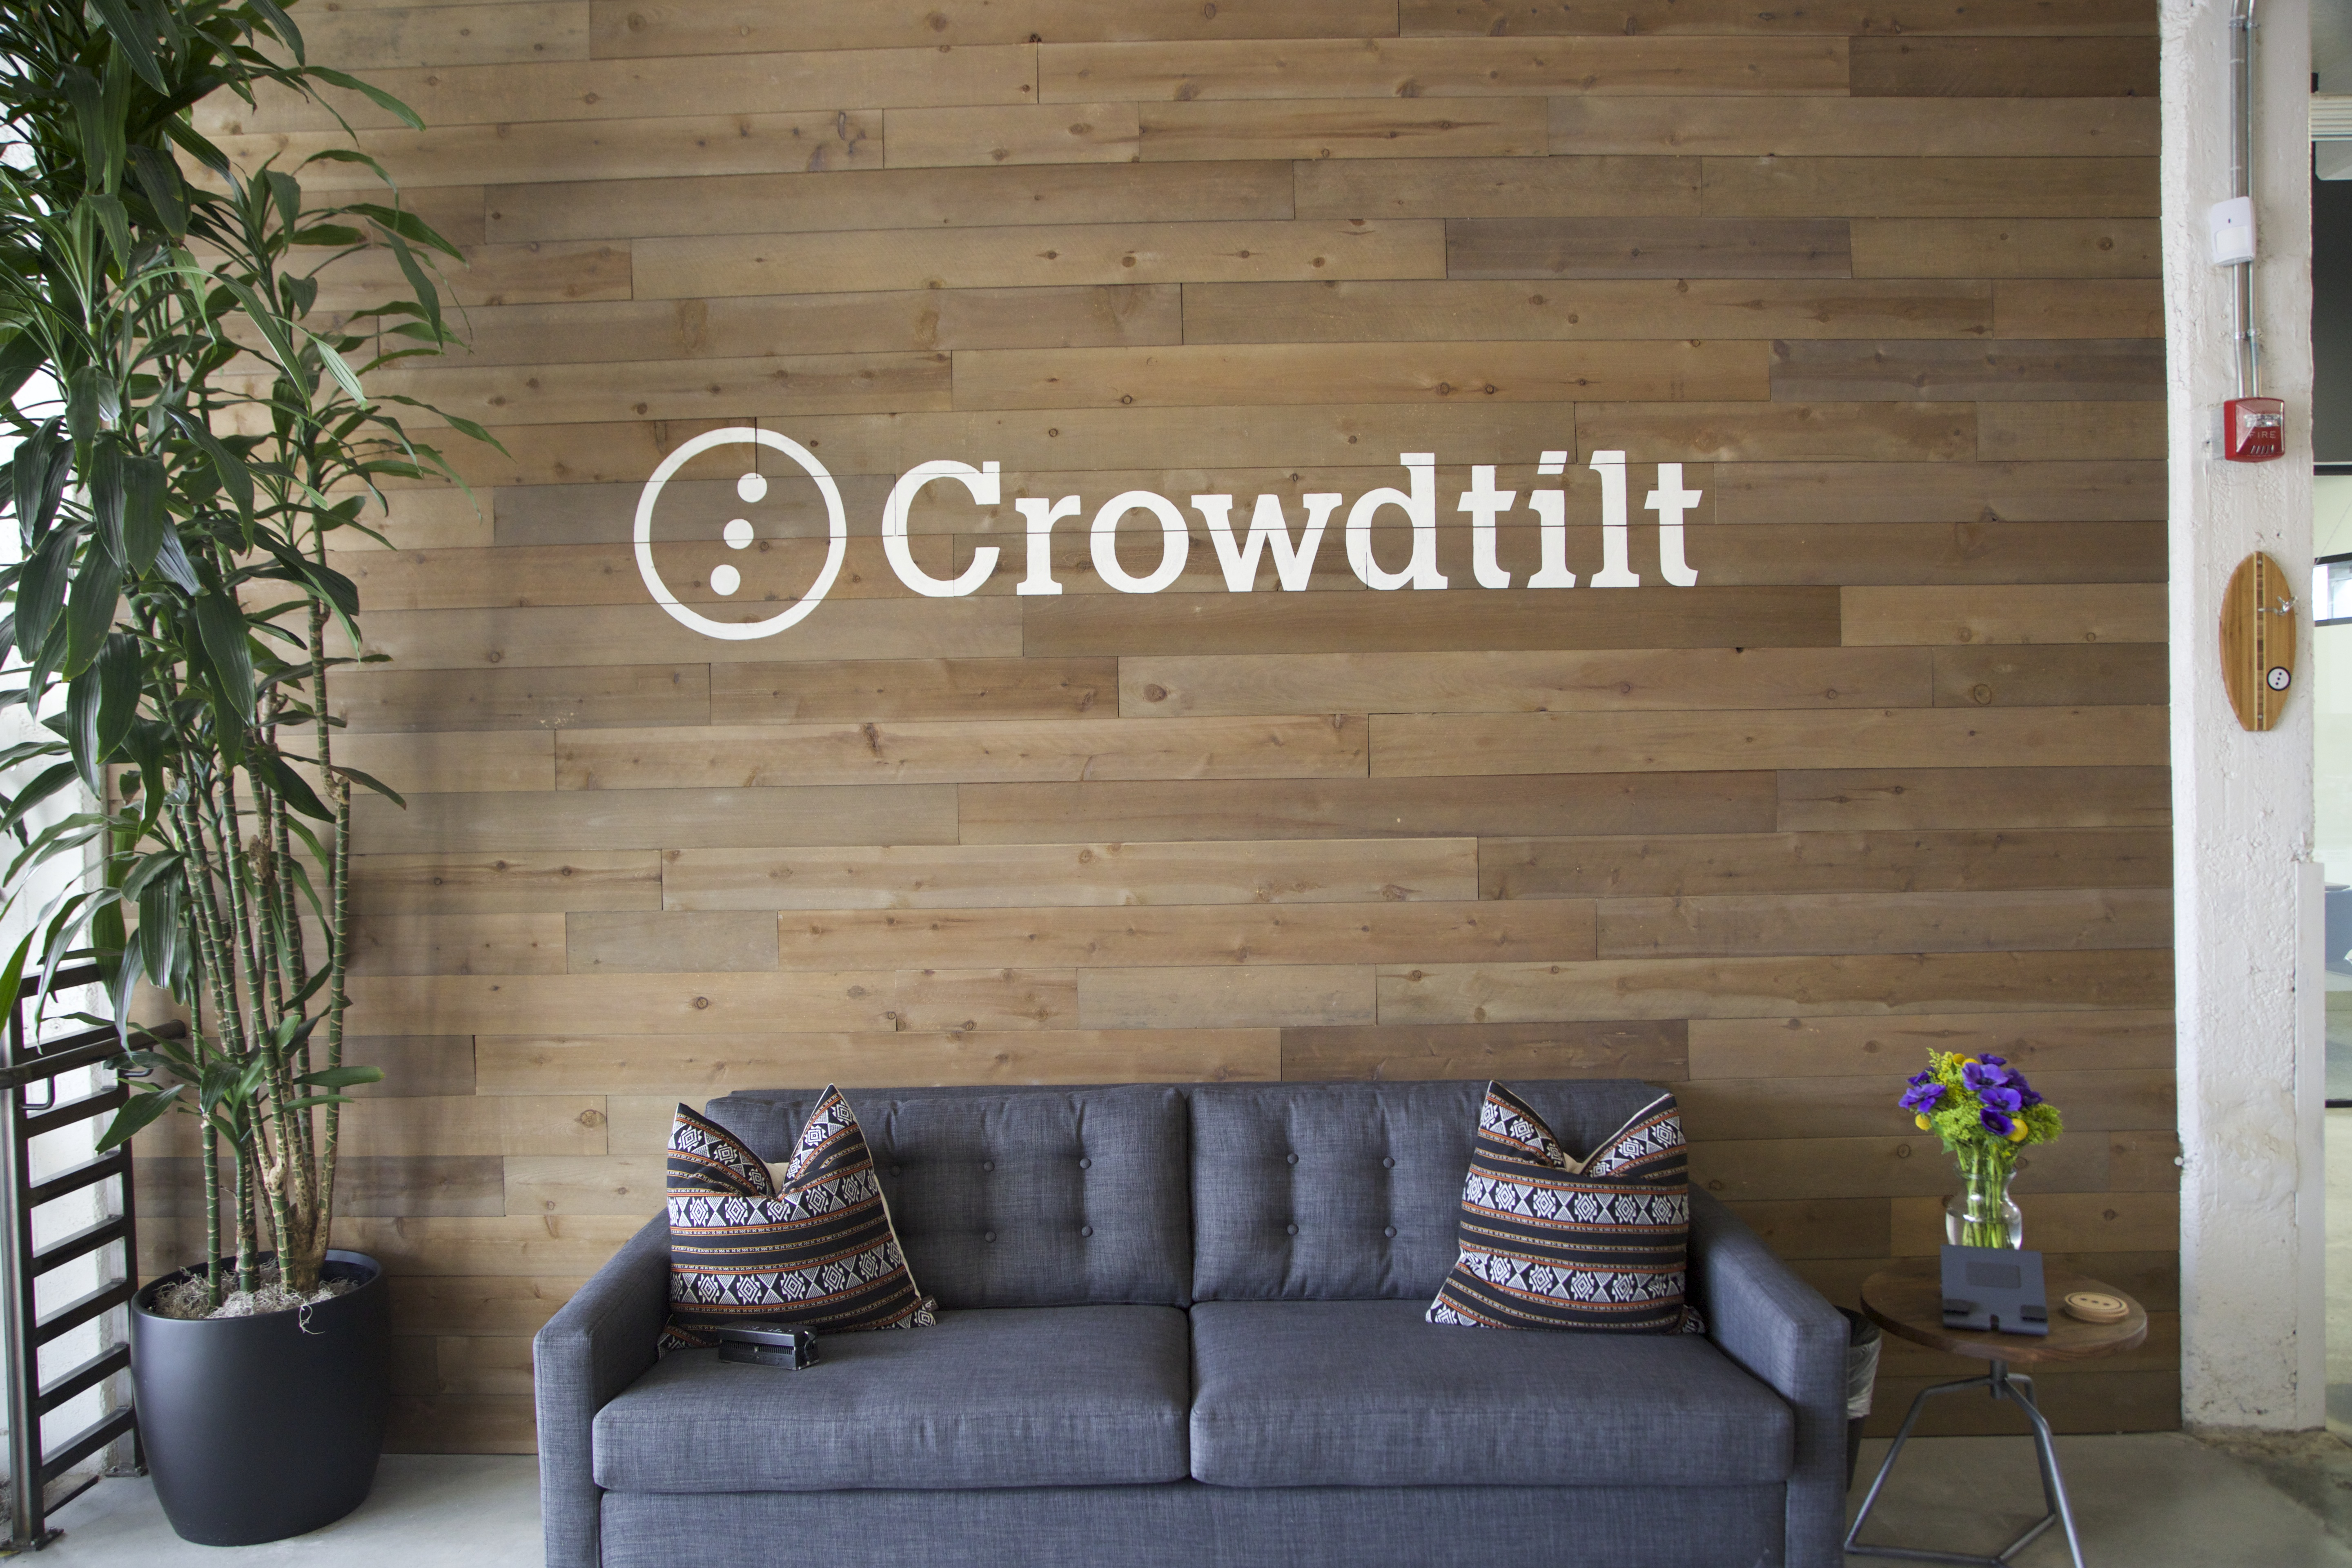 Crowdtilt's New Group Funded HQ | TC Cribs